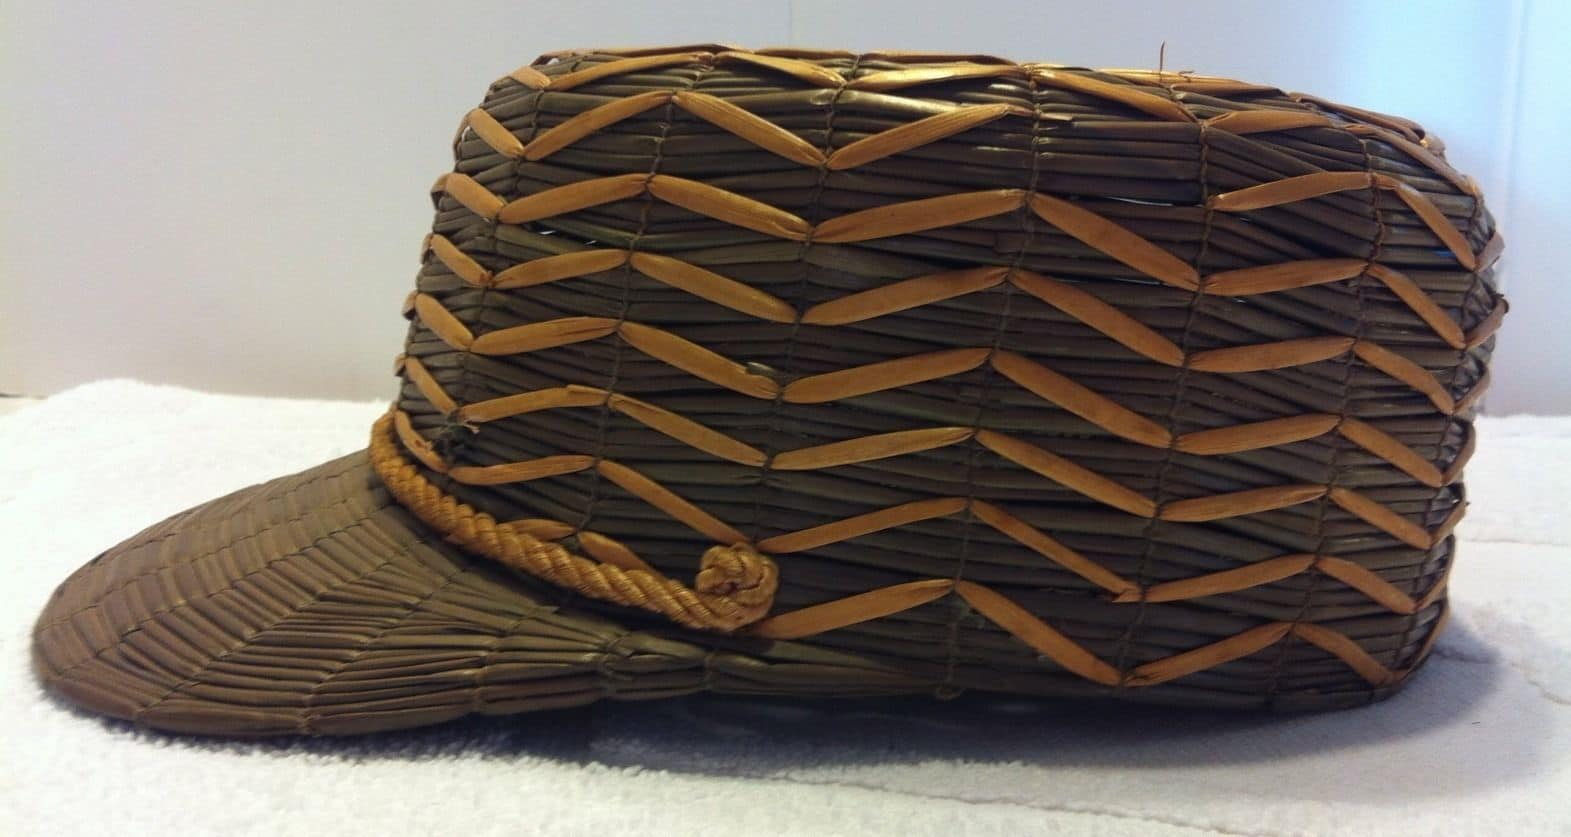 Yeddo-hat-side-view-courtesy-The-Straw-Shop-Collection